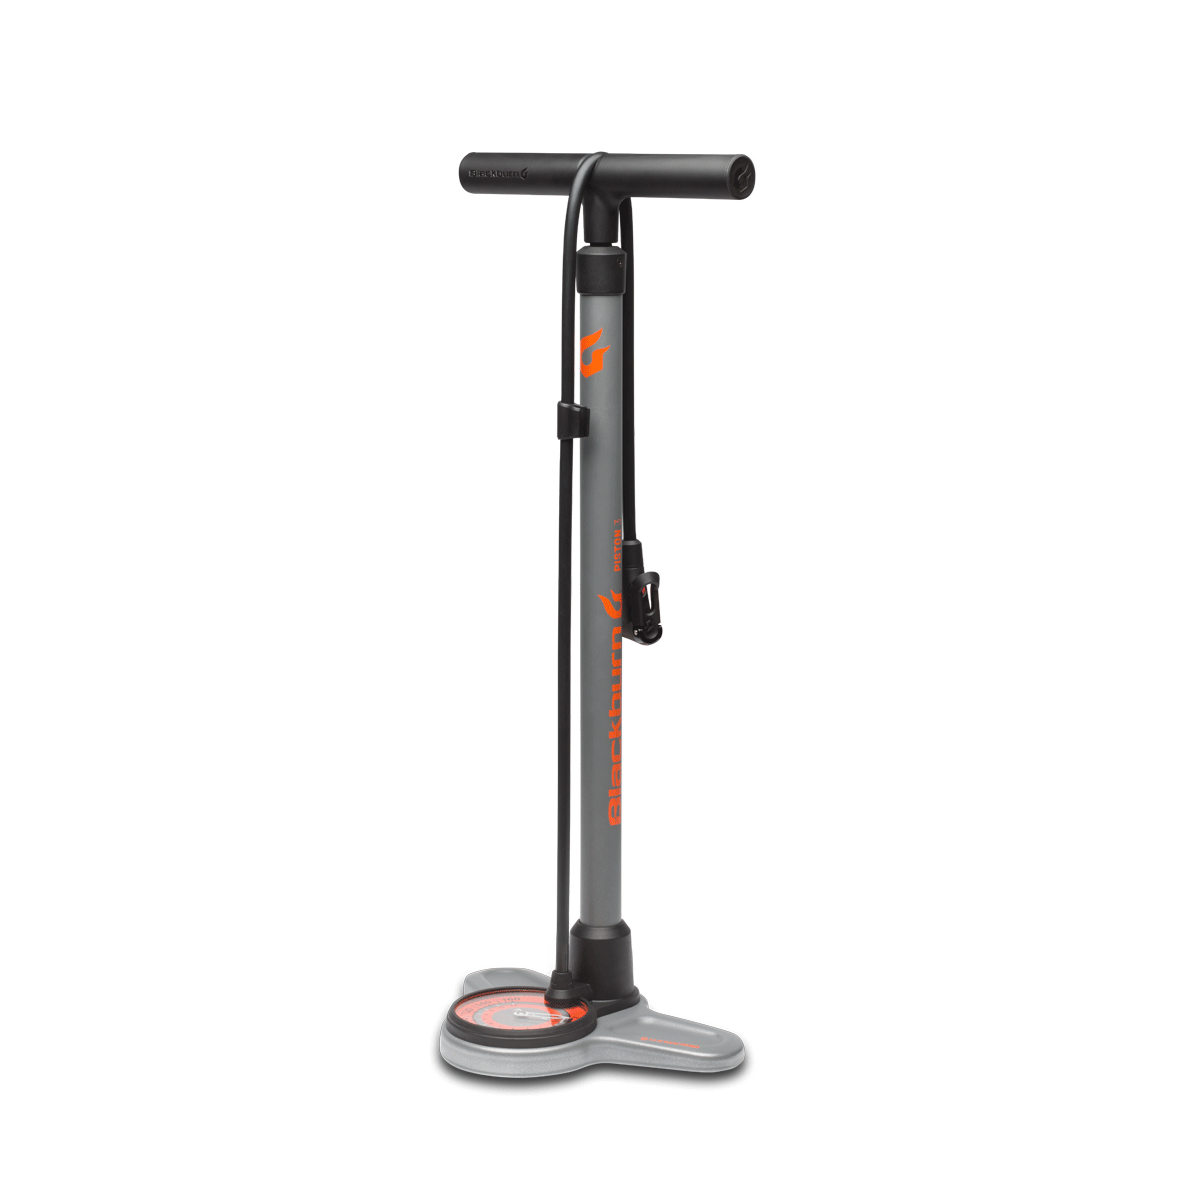 Blackburn Accessories > Pumps & Punctures BLACKBURN PISTON 3 FLOOR PUMP